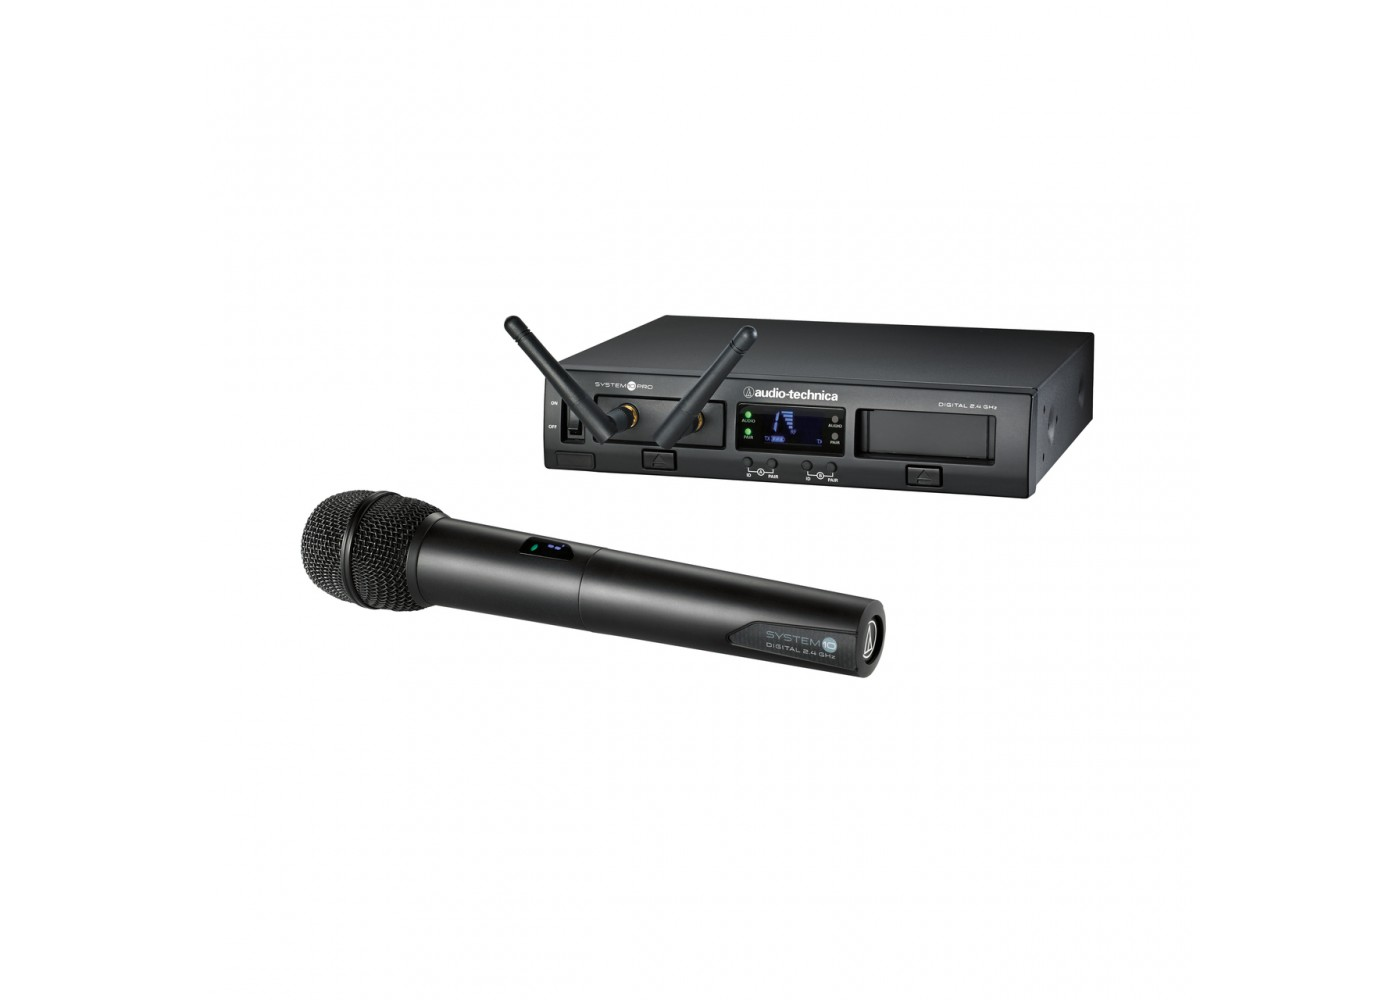 audio technica system 10 digital wireless handheld microphone system. Black Bedroom Furniture Sets. Home Design Ideas